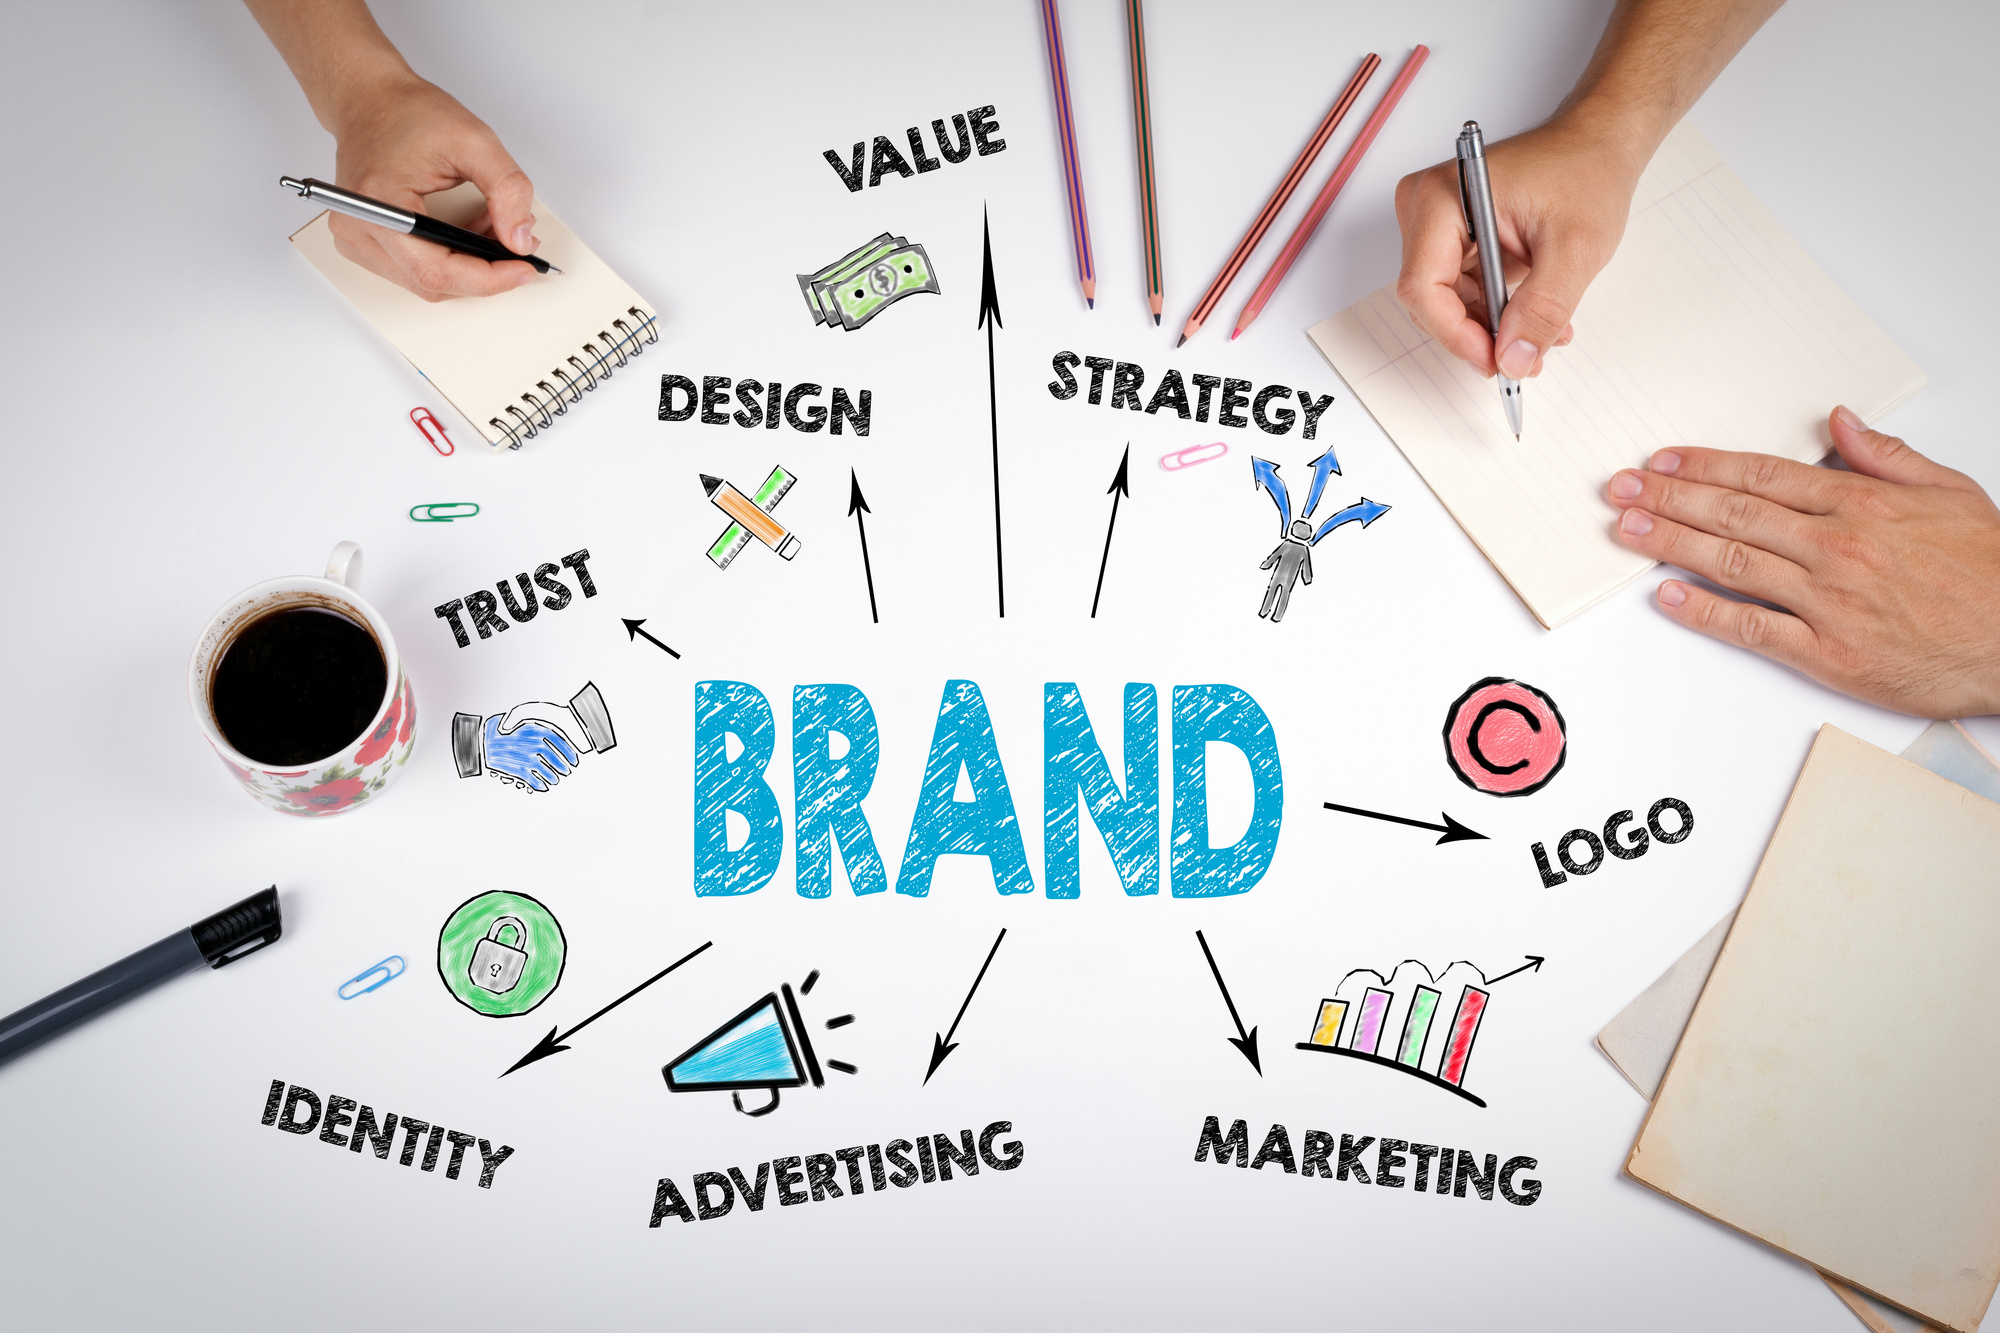 Strategic Logo Design Tips for Better Branding